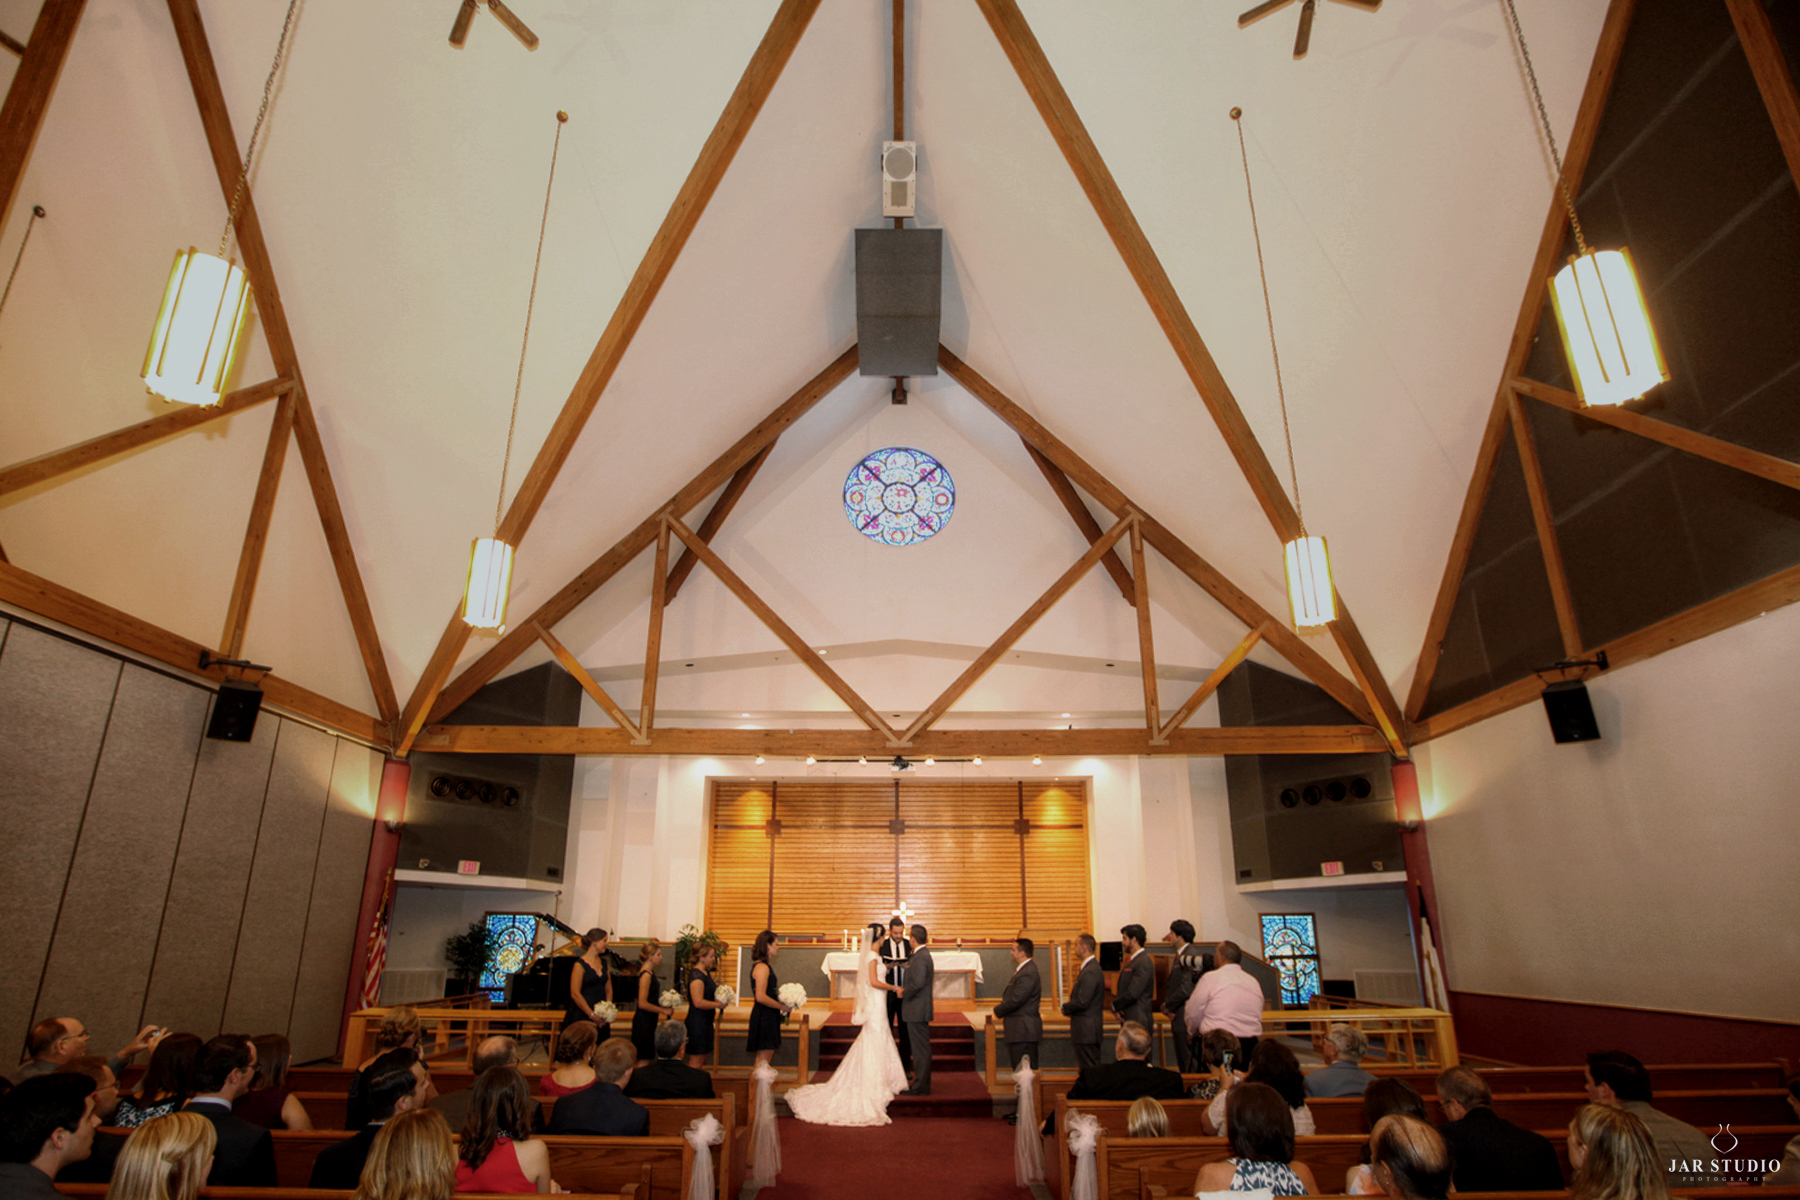 20-beautiful-church-ceilling-orlando-weddings-jarstudio-photography.JPG